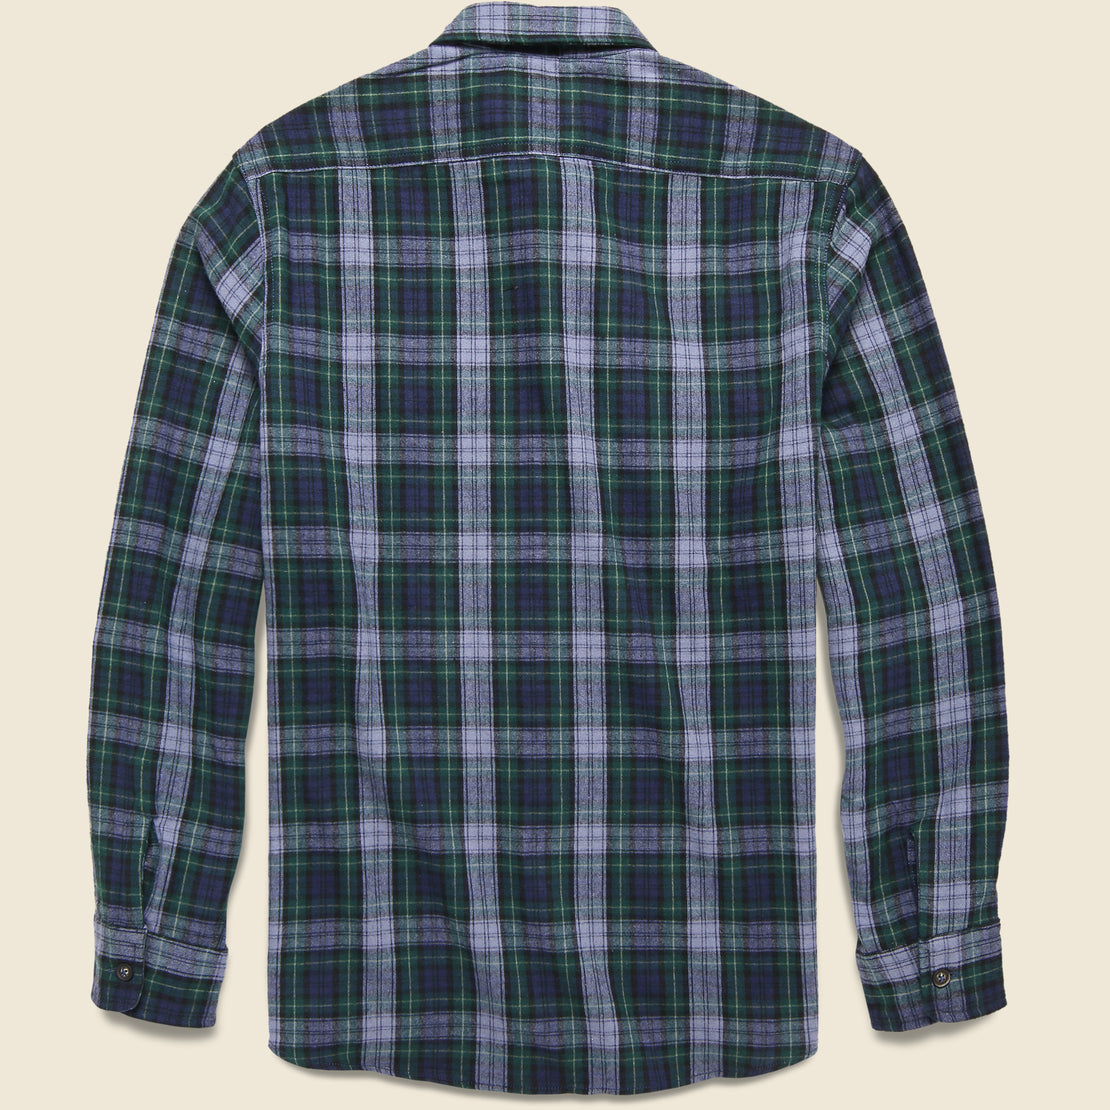 Rexford Mid-weight Plaid Shirt - Green/Blue